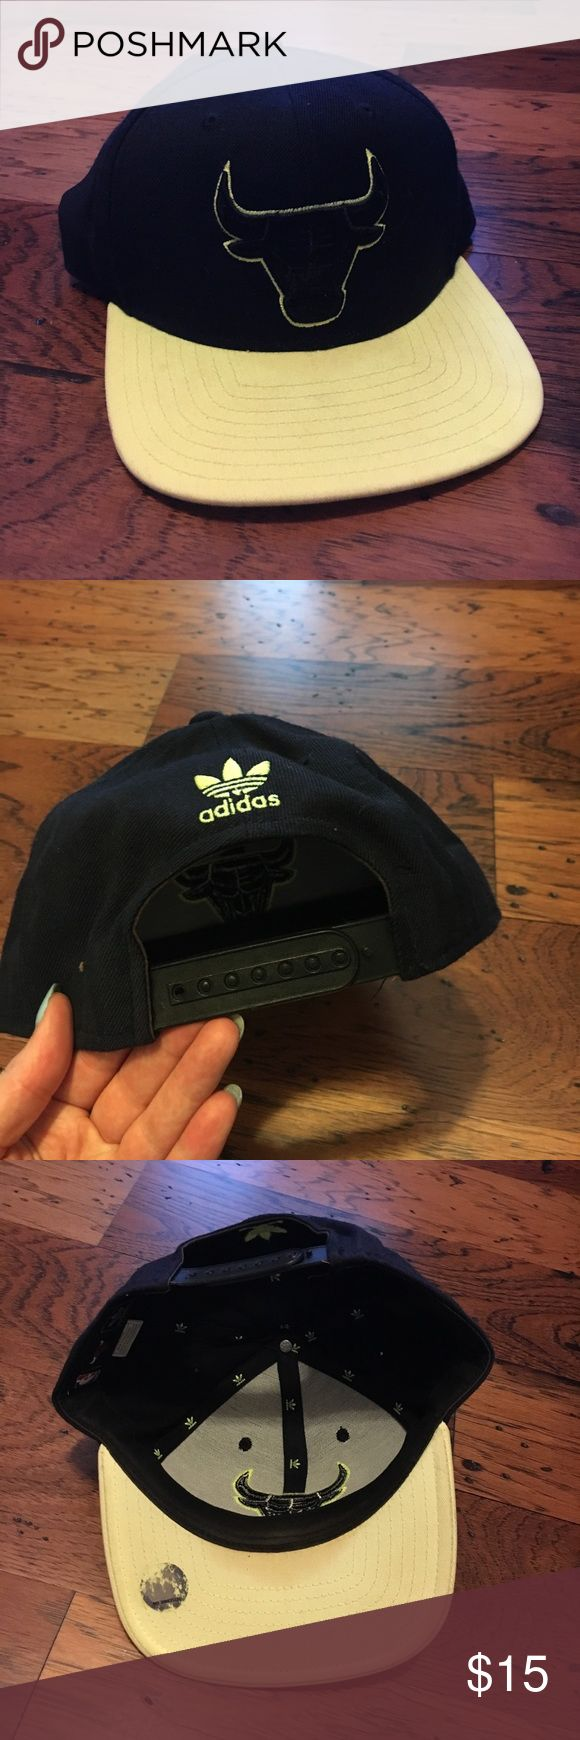 Chicago bulls/ adidas snapback Only worn a handful of times; great condition adidas Accessories Hats